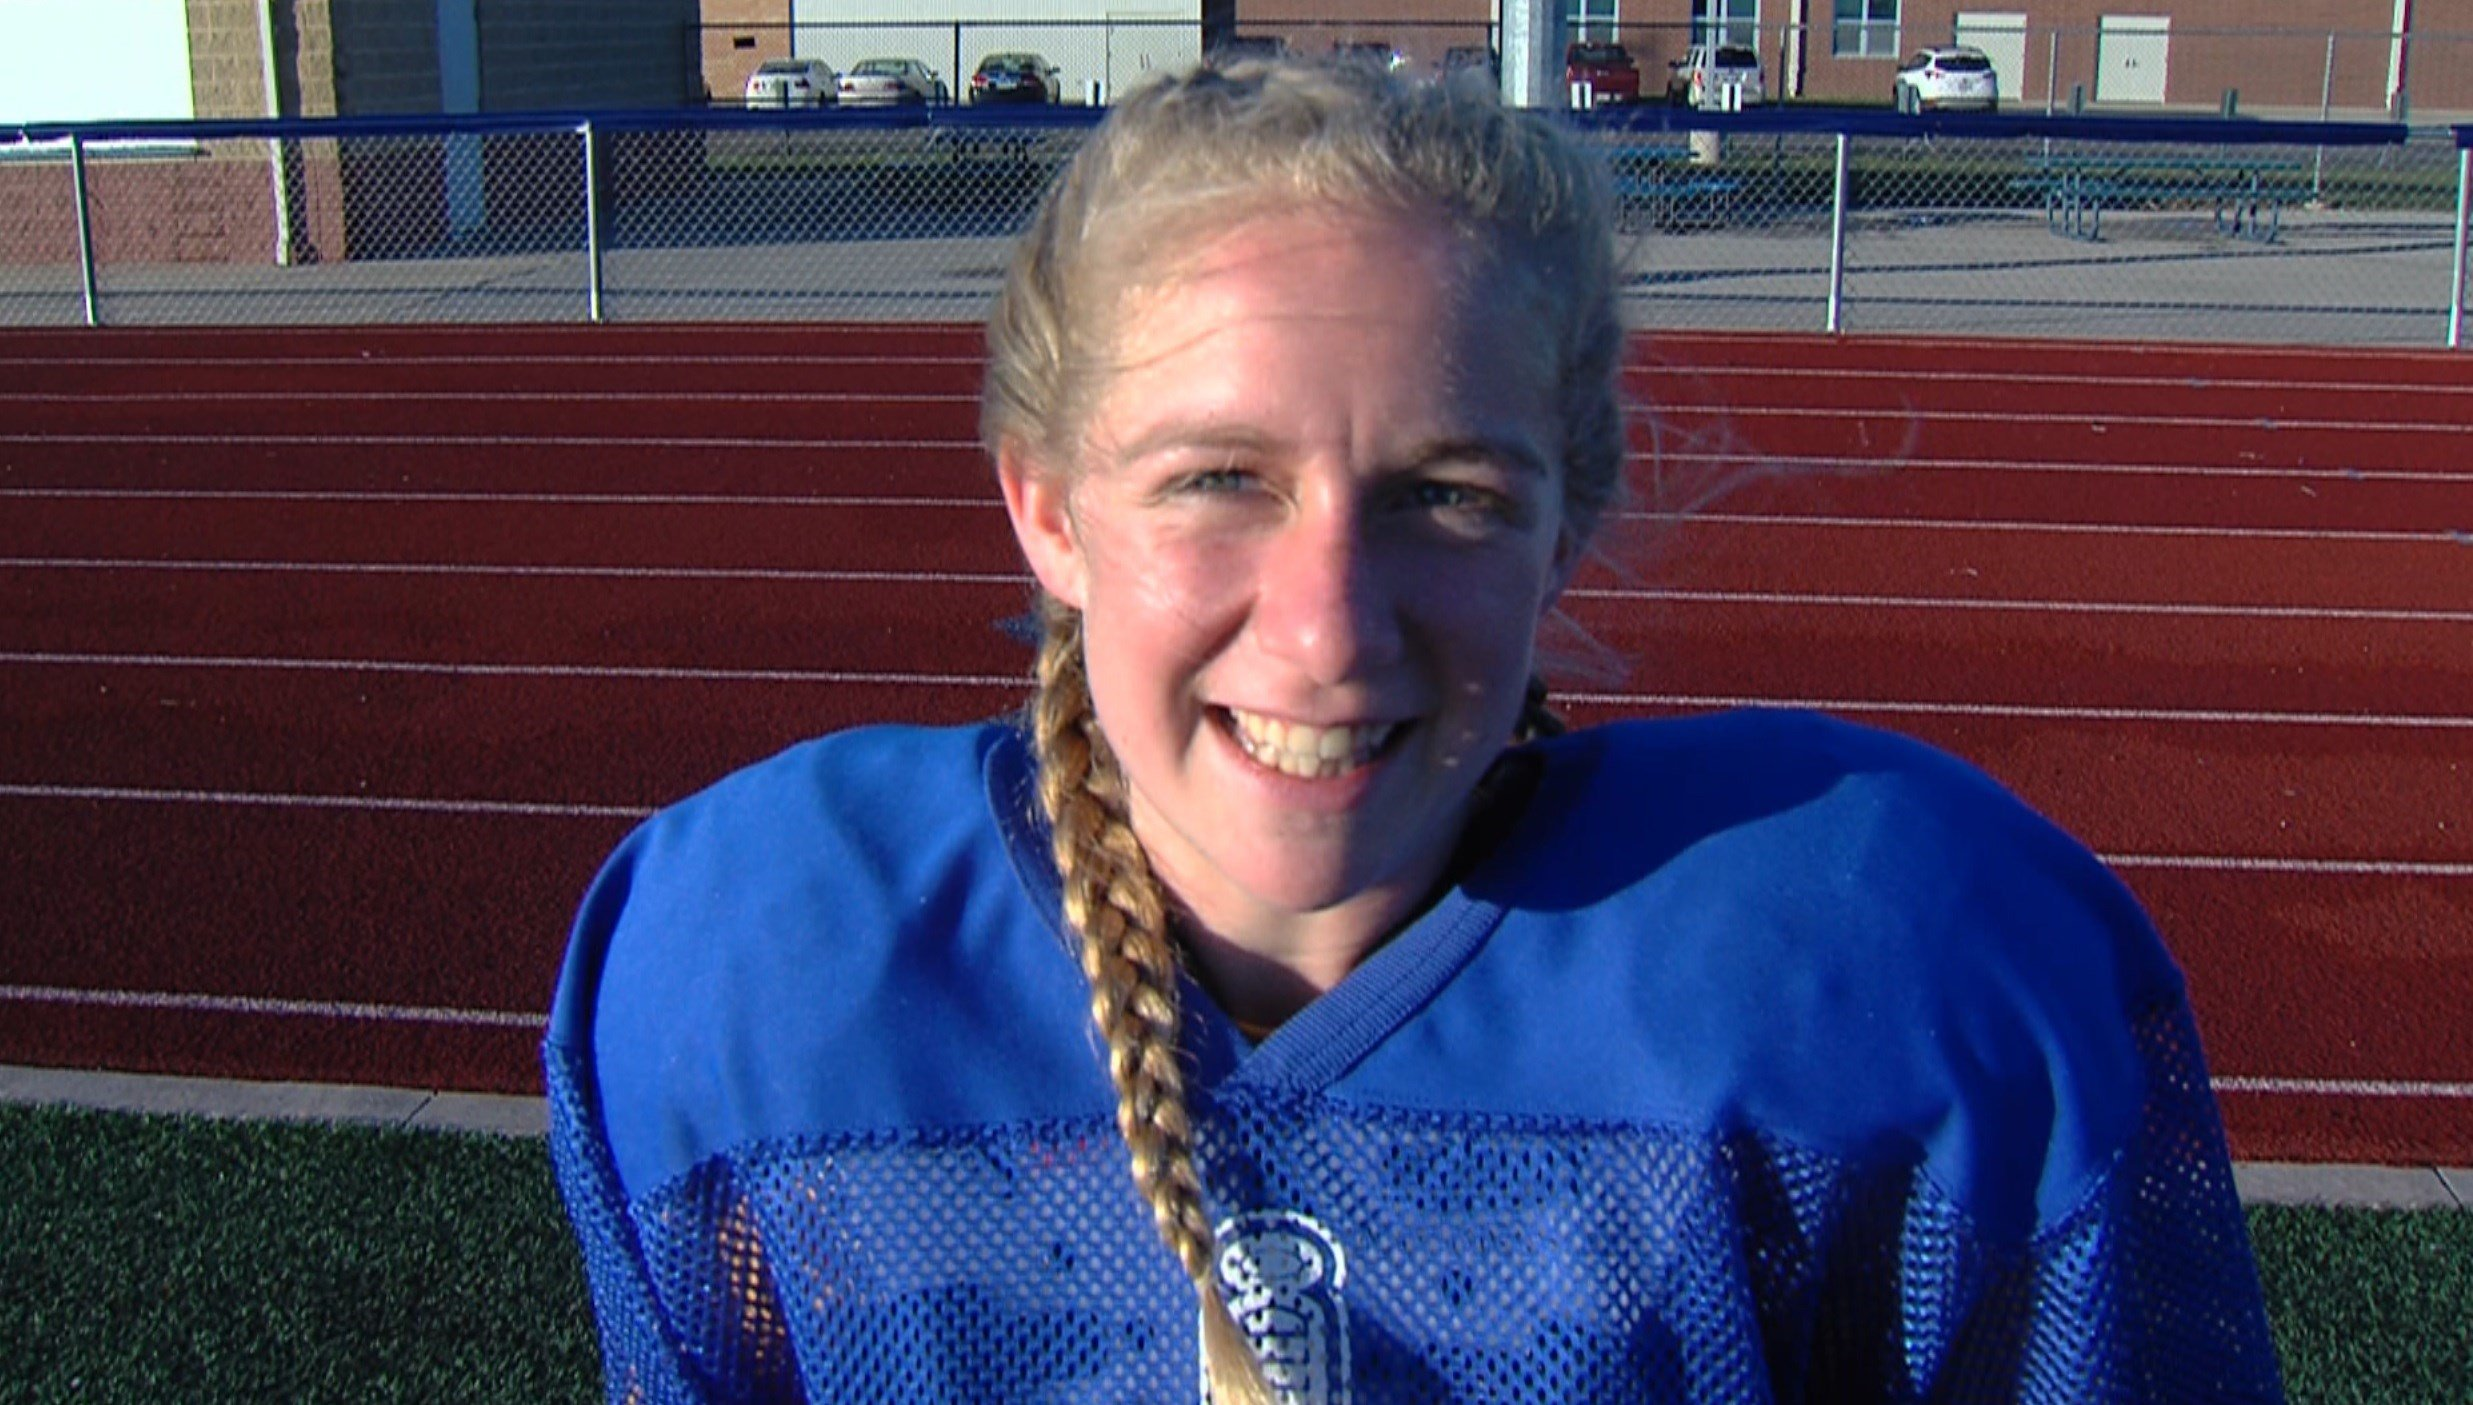 Maroa-Forsyth kicker Reilly Fitzpatrick was named Academic All-State after starting at kicker and posting a perfect 5.0 GPA.